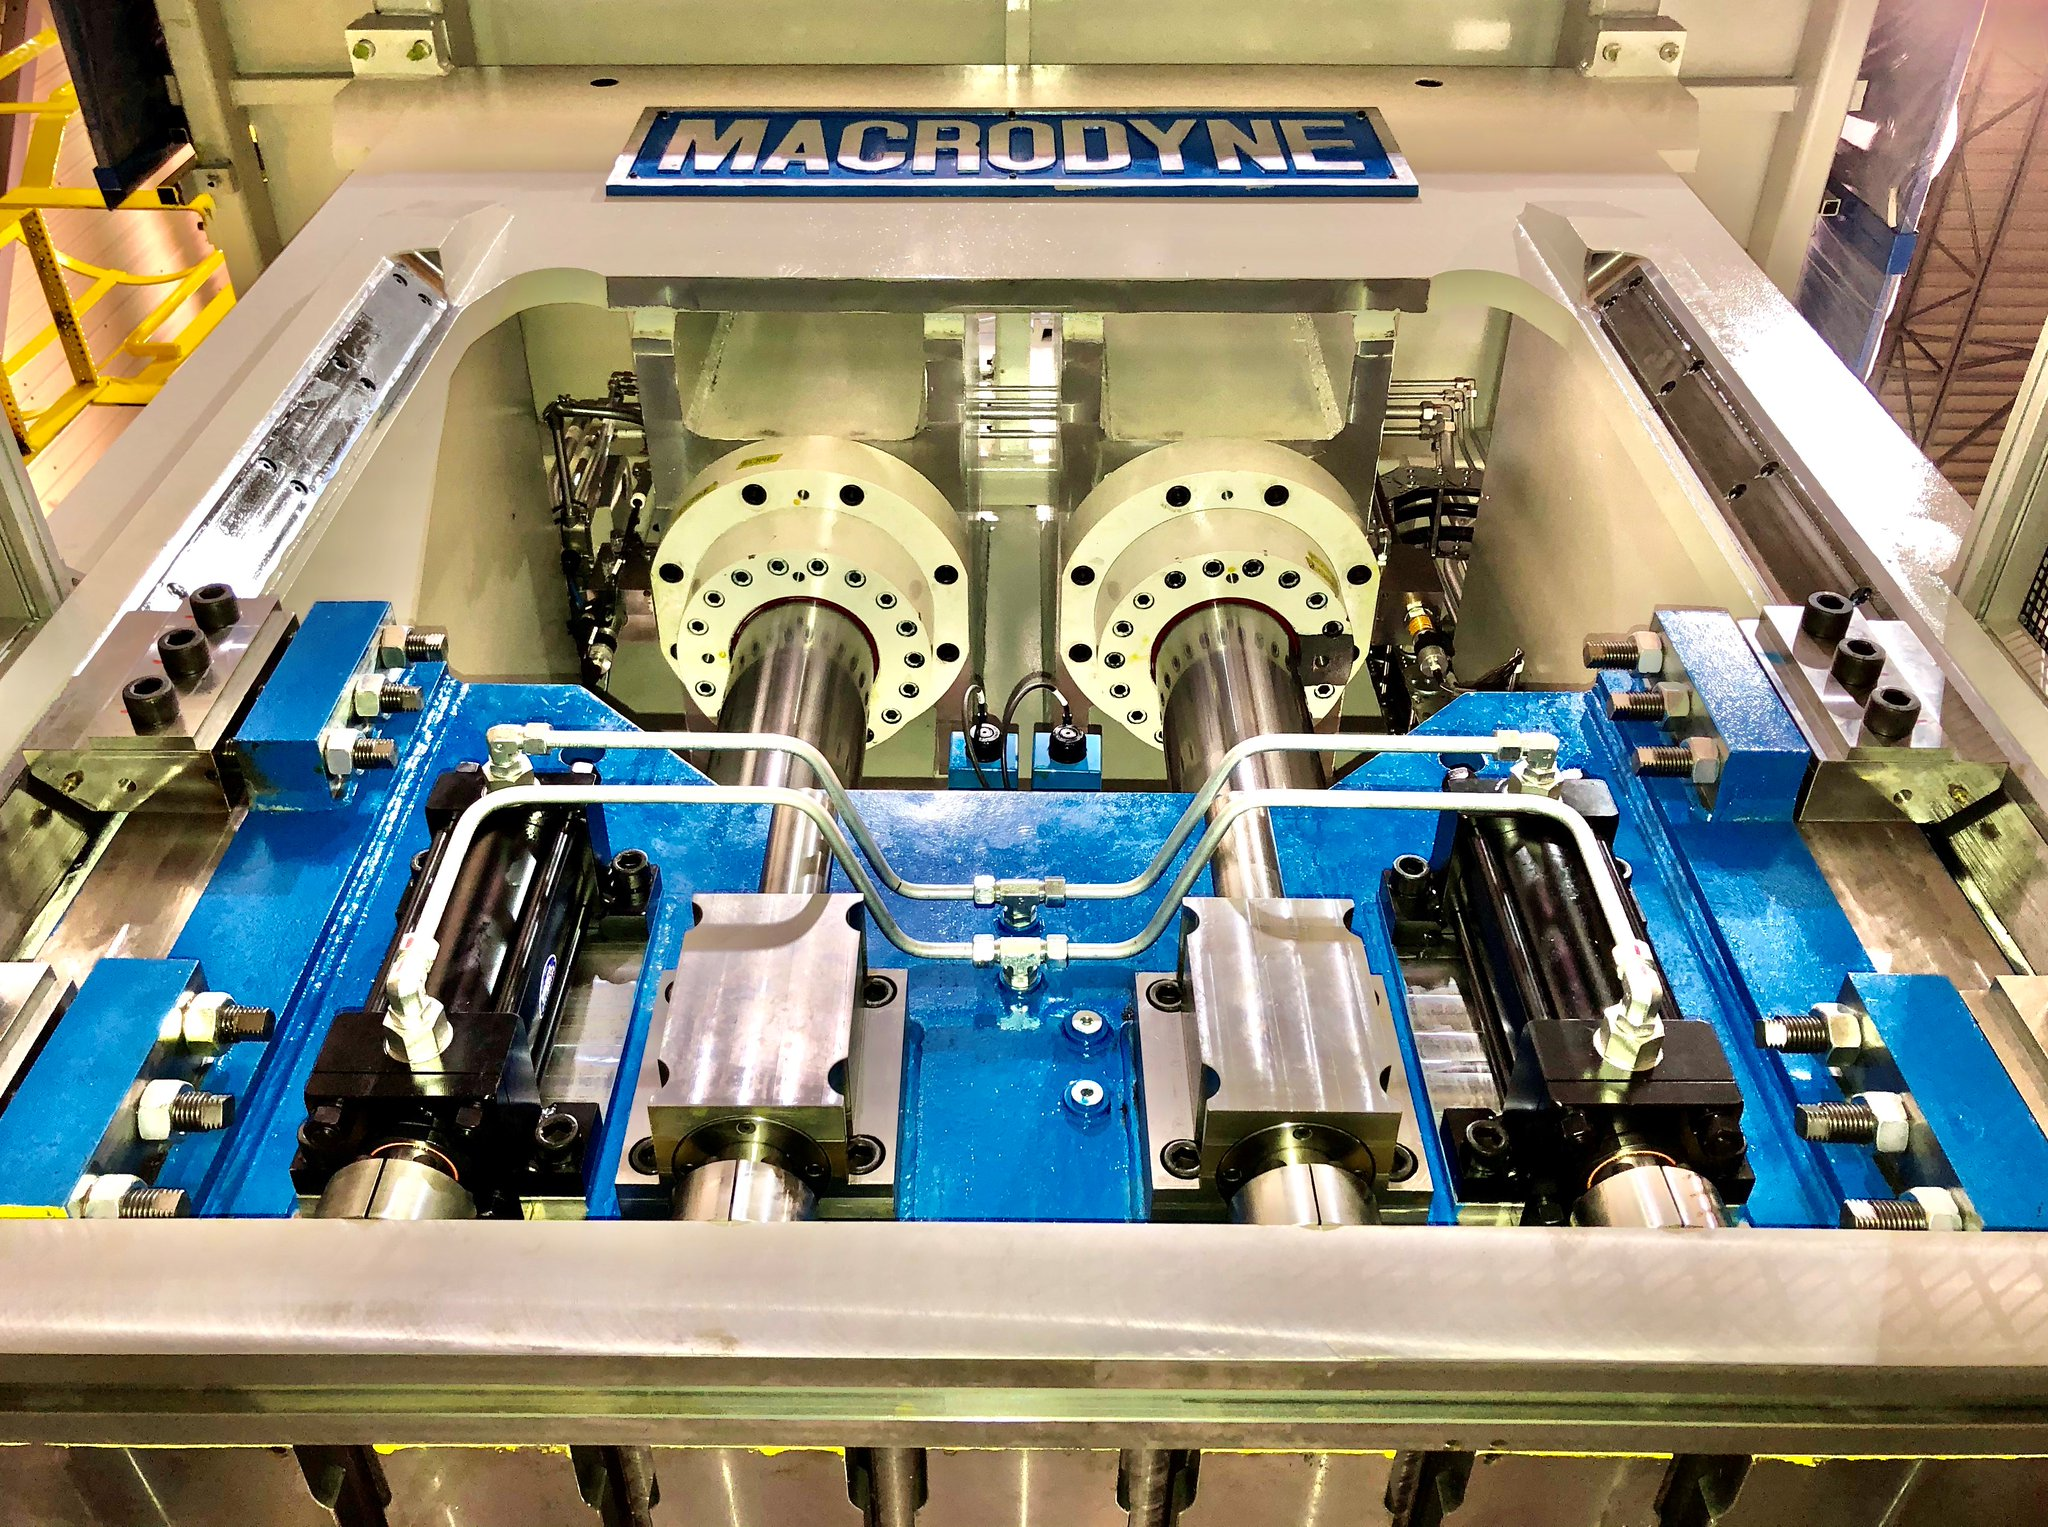 """Macrodyne Technologies on Twitter: """"Macrodyne 300 Ton Compression Molding Press, with #VFD, saves energy and costs. https://t.co/T7iAy5OsEI #hydraulicpress #pressautomation #consumerproduct #automotive #aerospace… https://t.co/E7CEpNVaSU"""""""